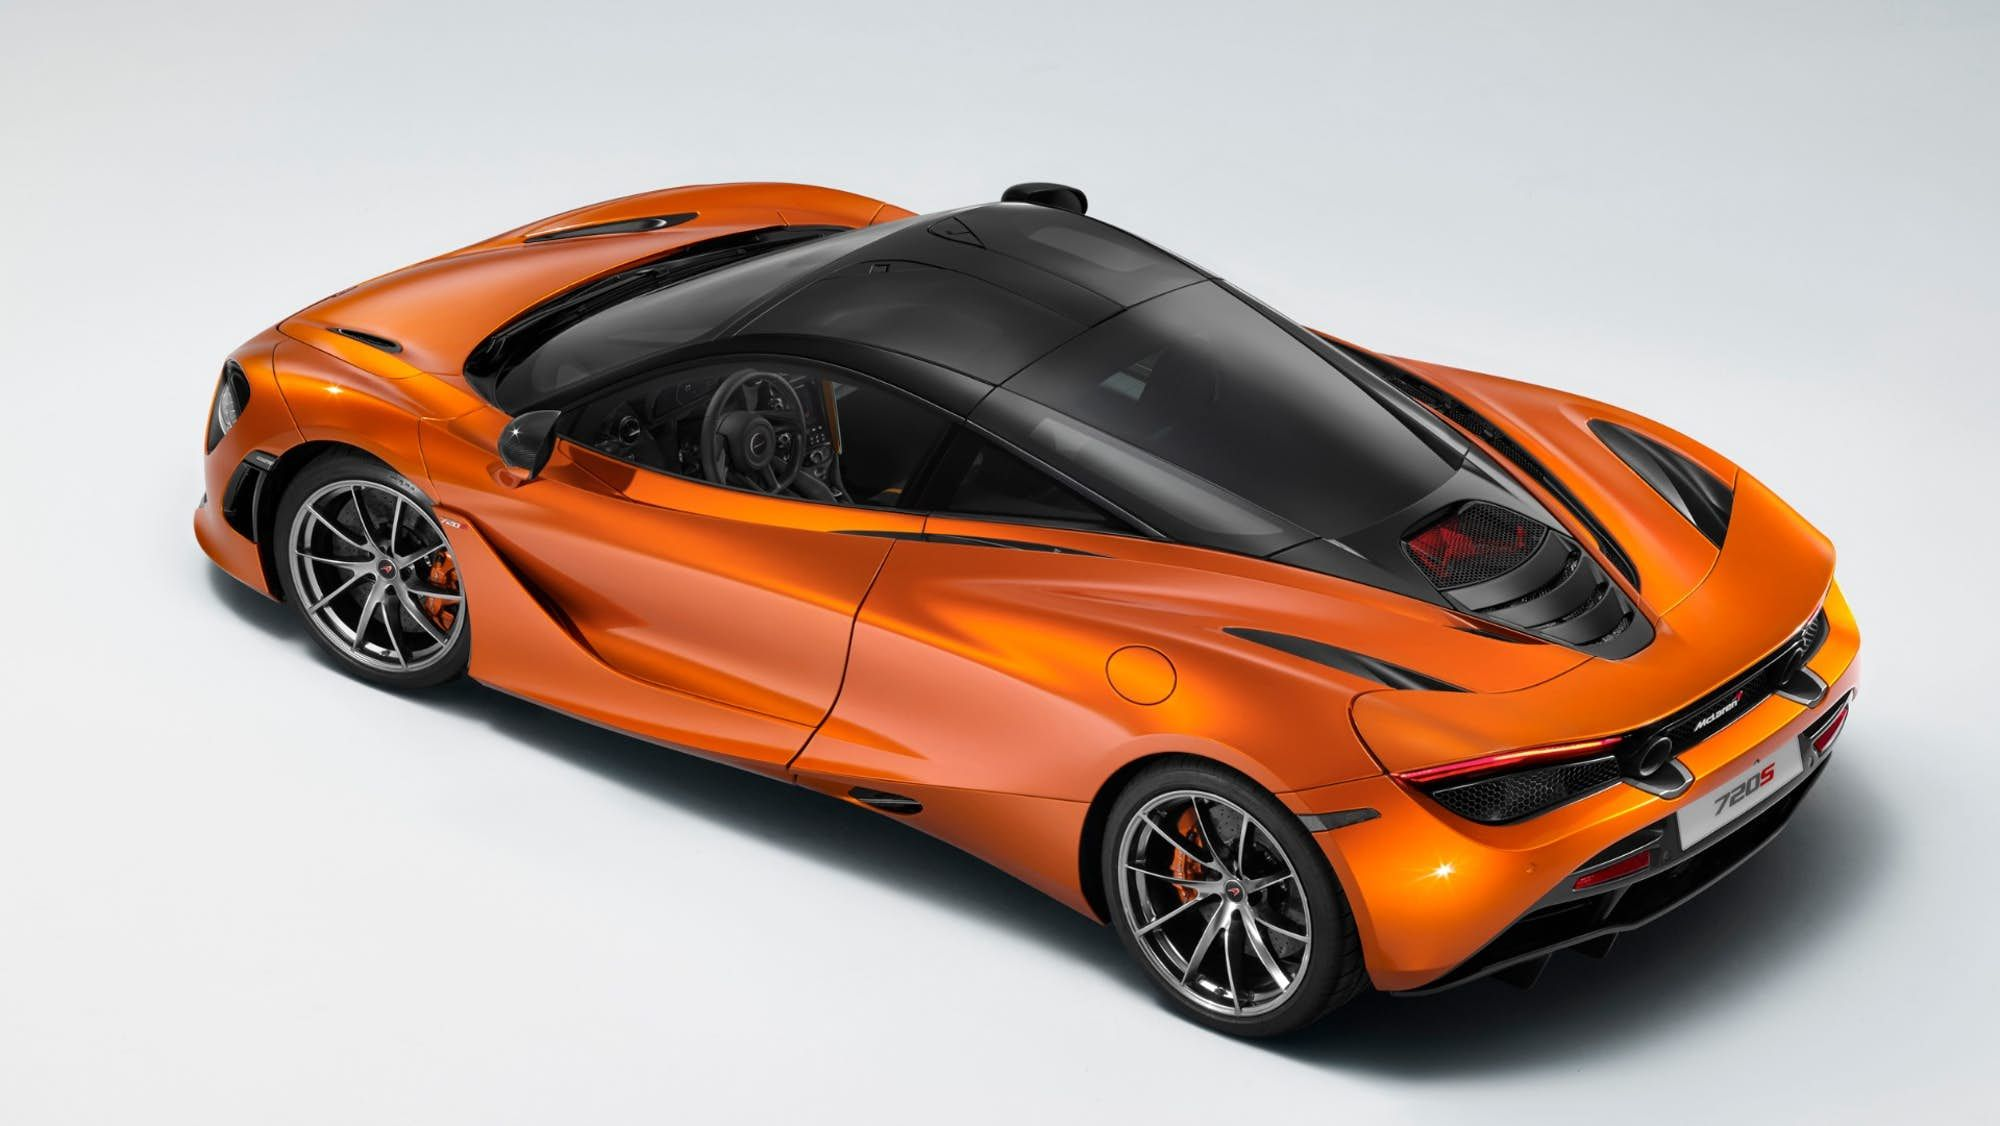 Fai Names Most Beautiful Car Concept City And Supercar Of 2017 Super Cars Beautiful Cars Mclaren